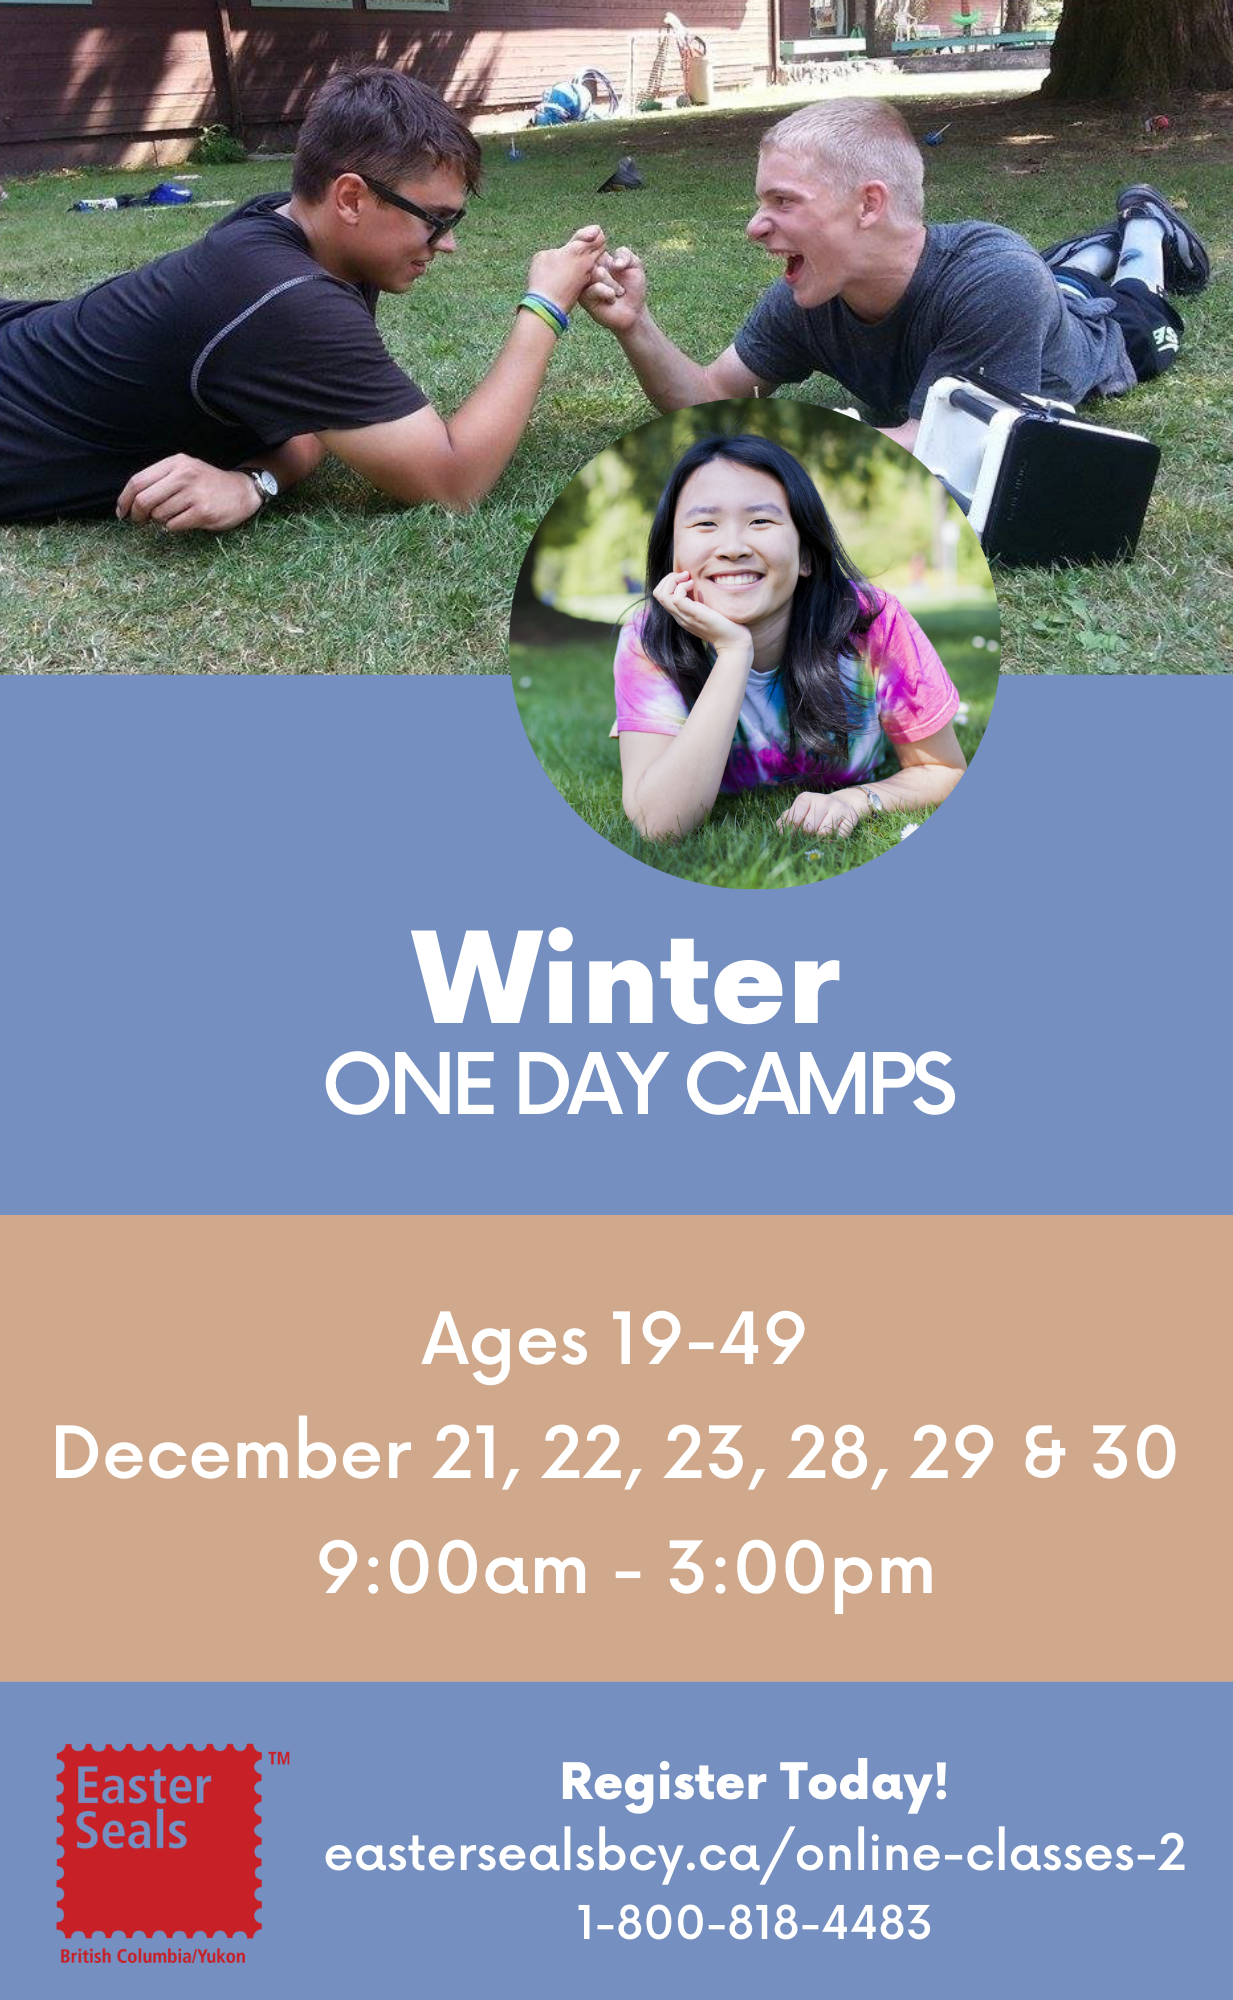 Winter One Day Camps for Ages 19-49